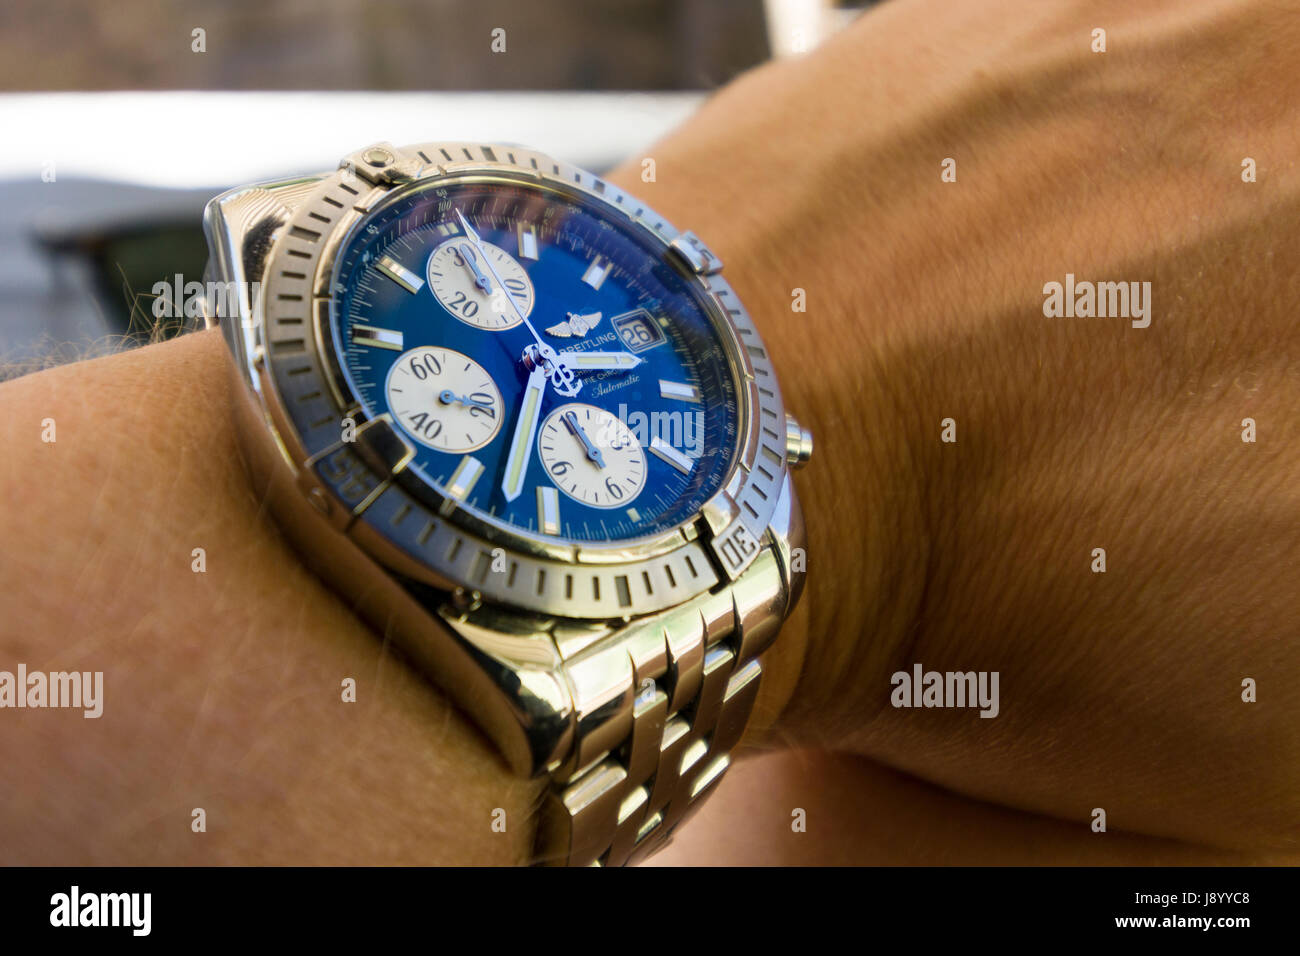 Luxury Breitling Chronomat Evolution watch with blue face on man's wrist  Model Release: Yes.  Property release: - Stock Image